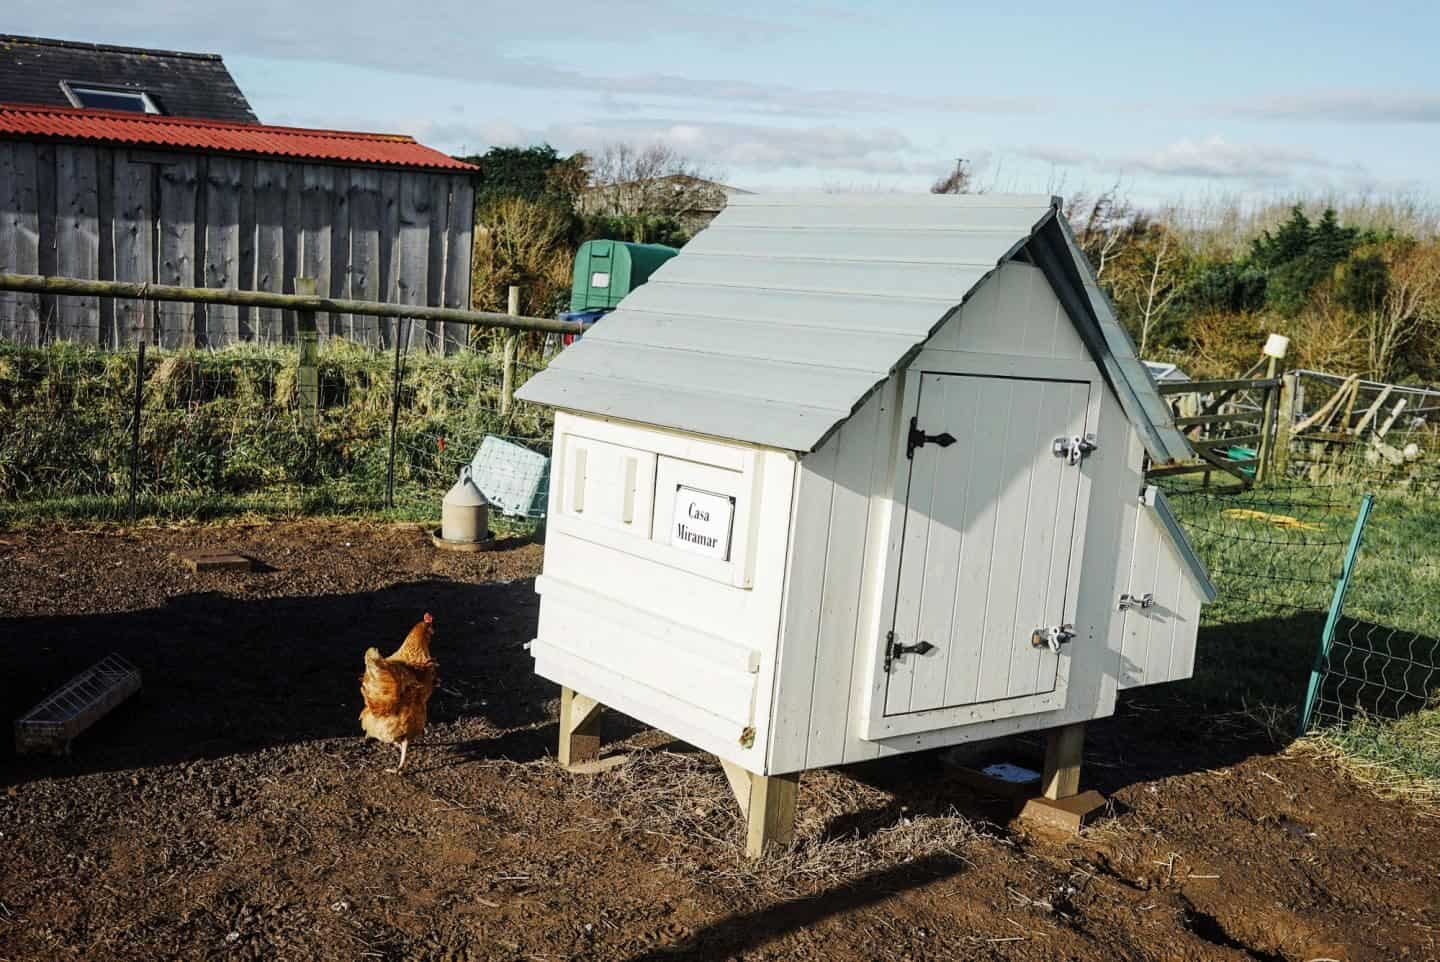 enamel house signs by Ramsign seen on a chicken coup